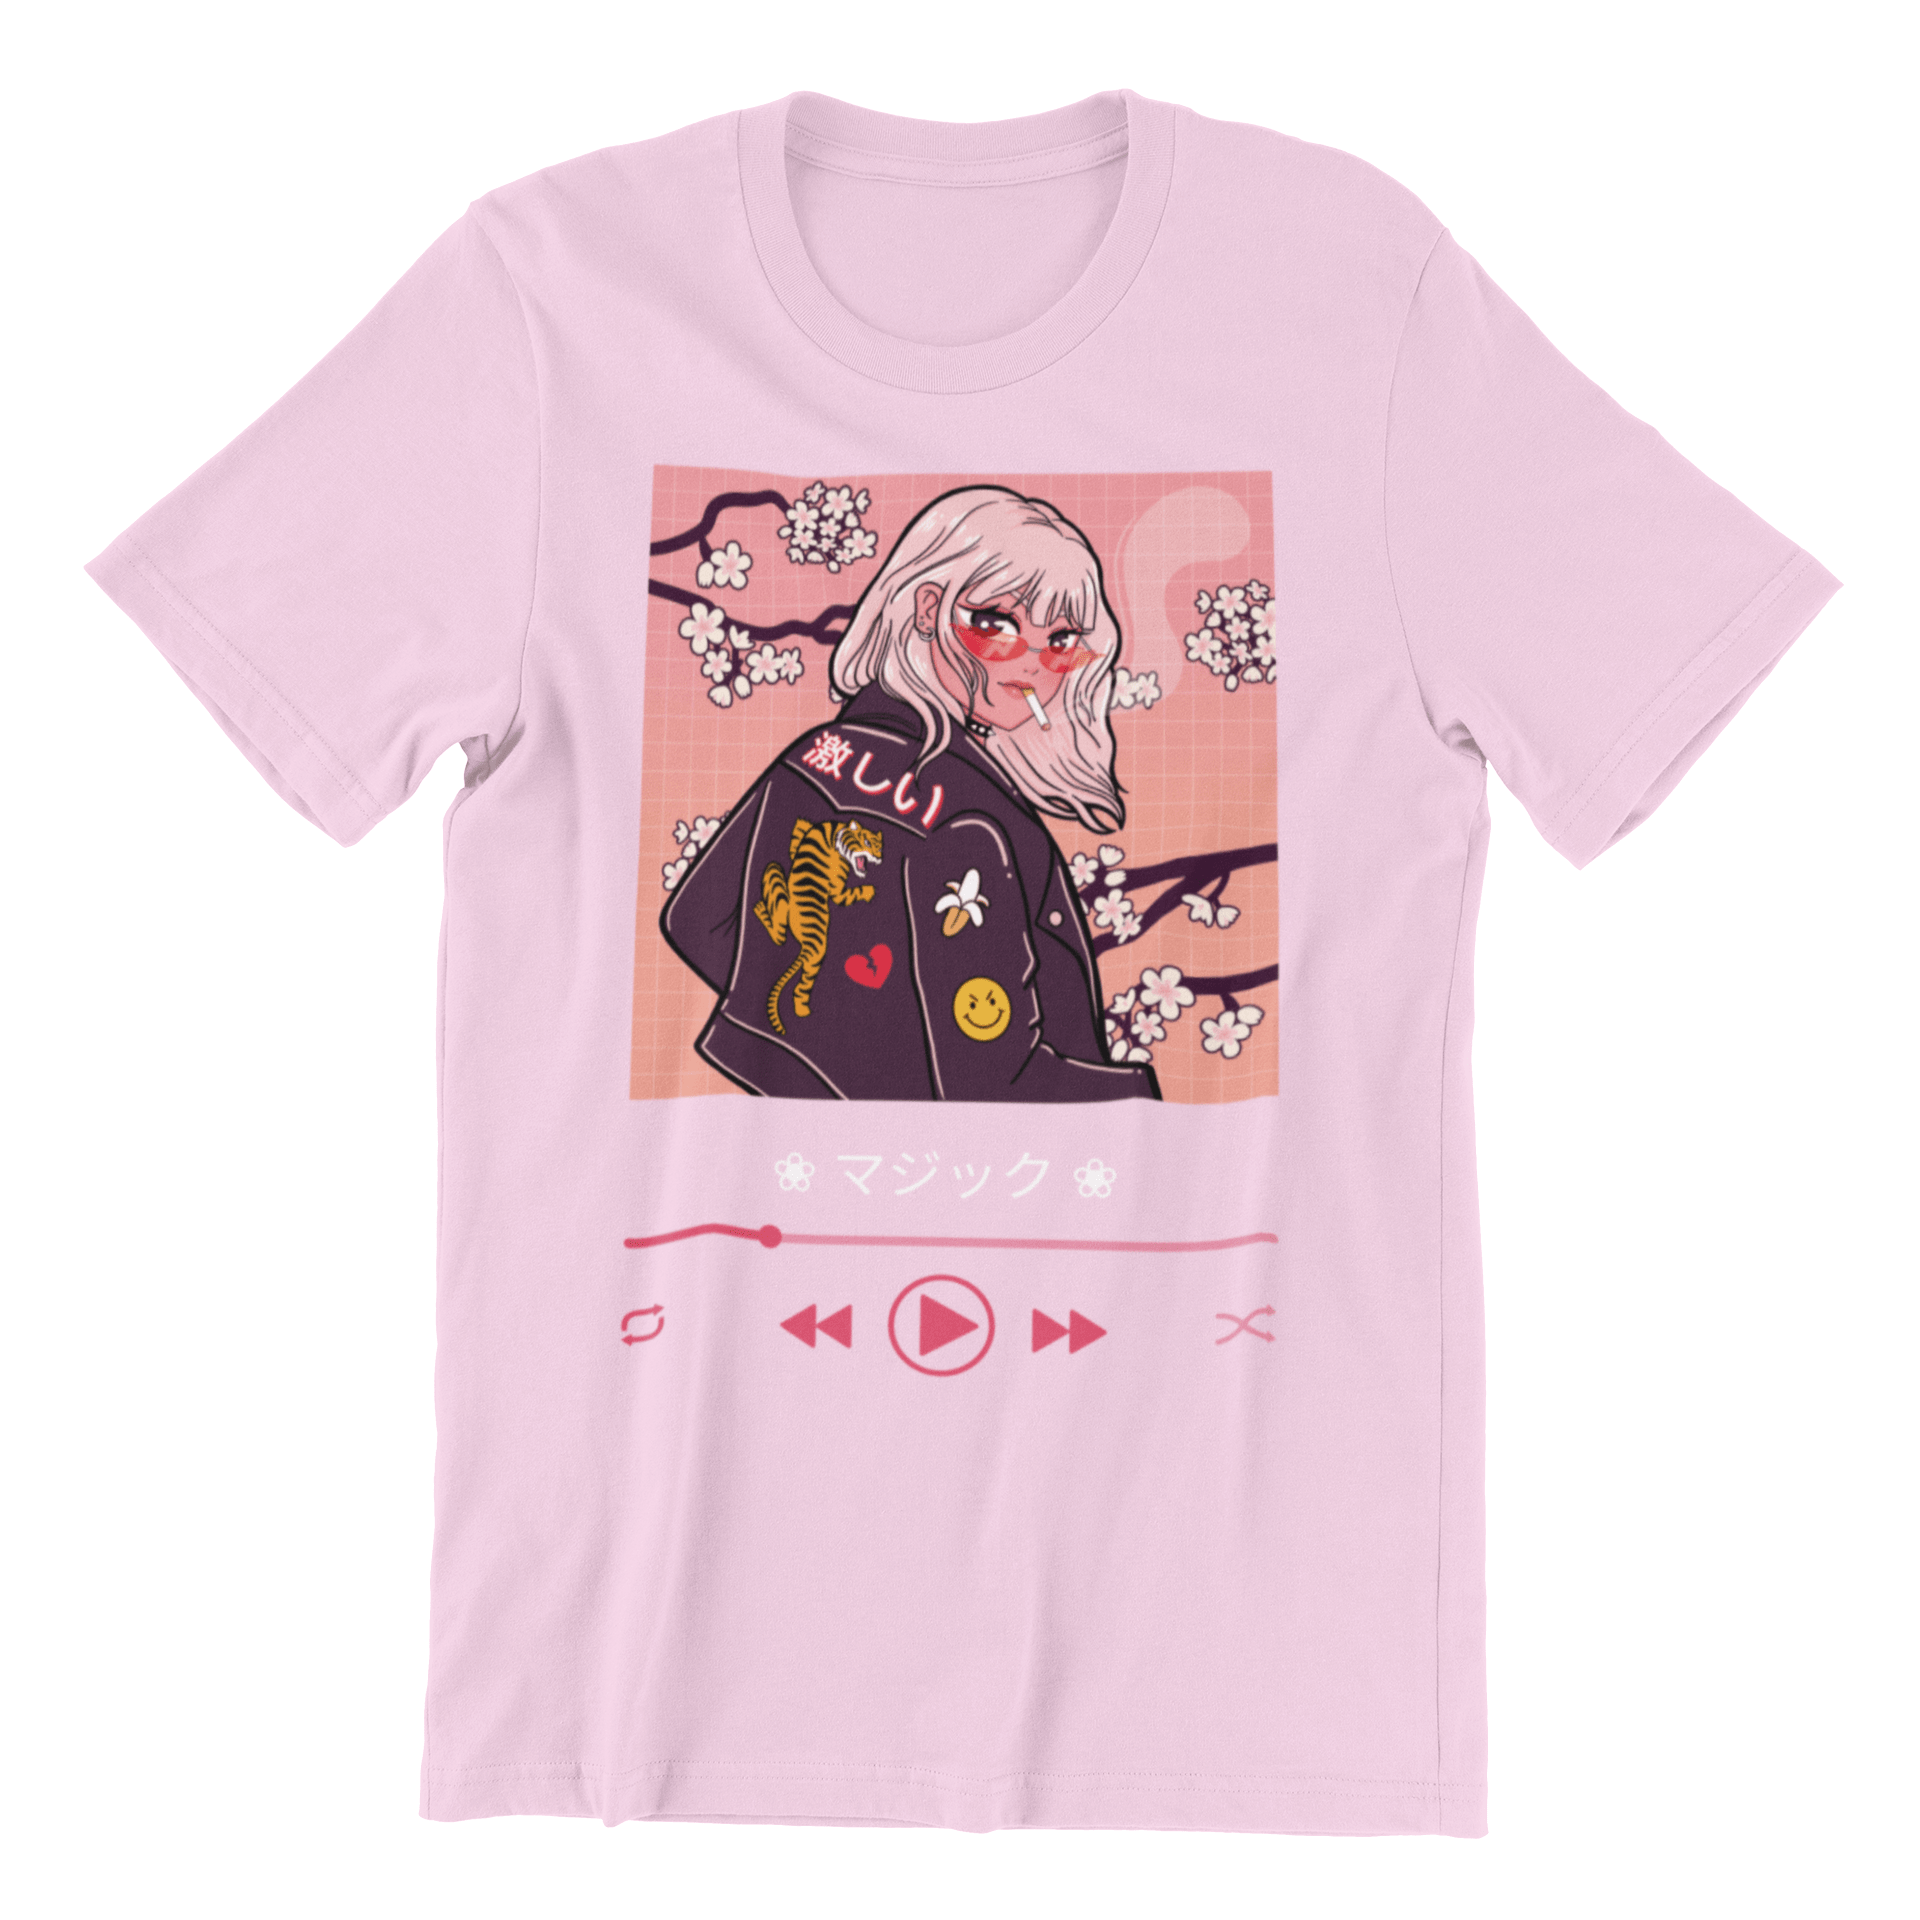 Anime Player Tee - Majikku - Just Asian Things